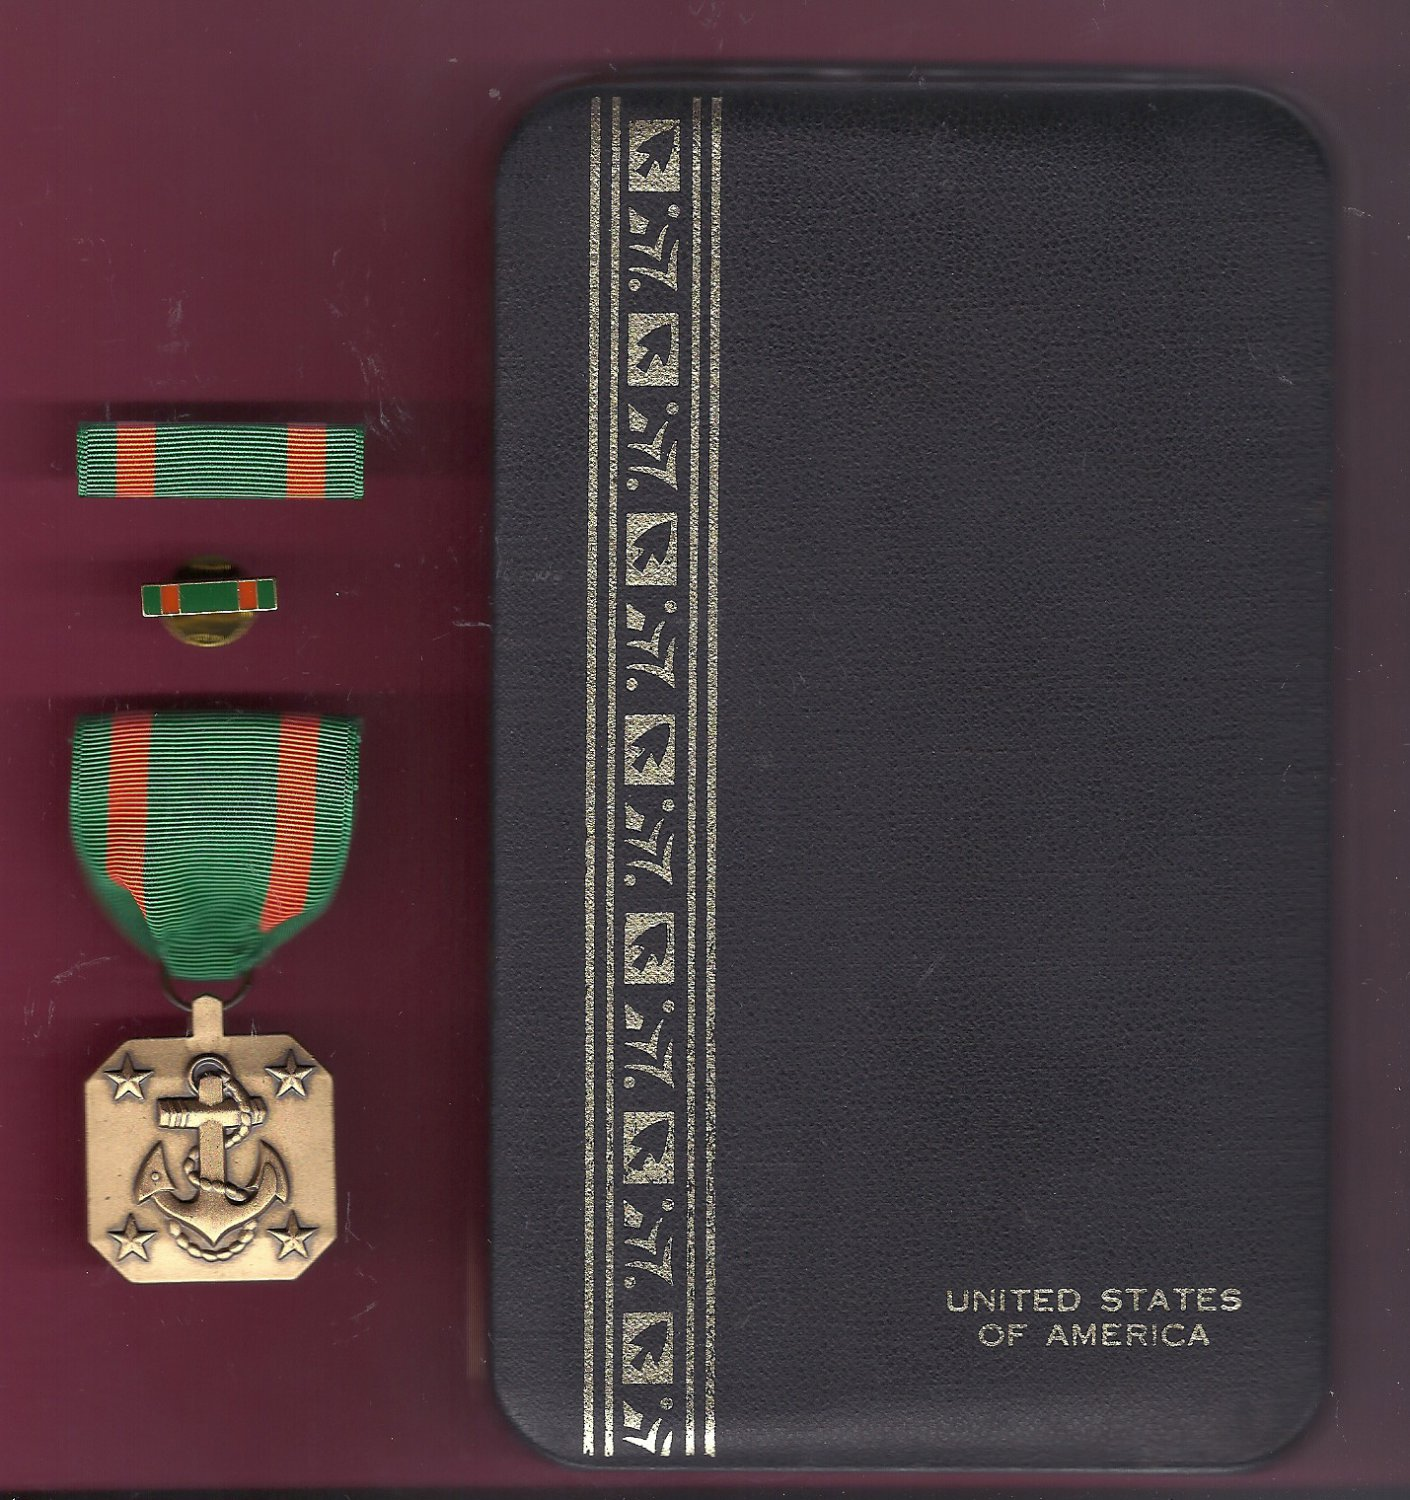 US Navy and Marine Corps Achievement Award medal in case with ribbon bar and lapel pin